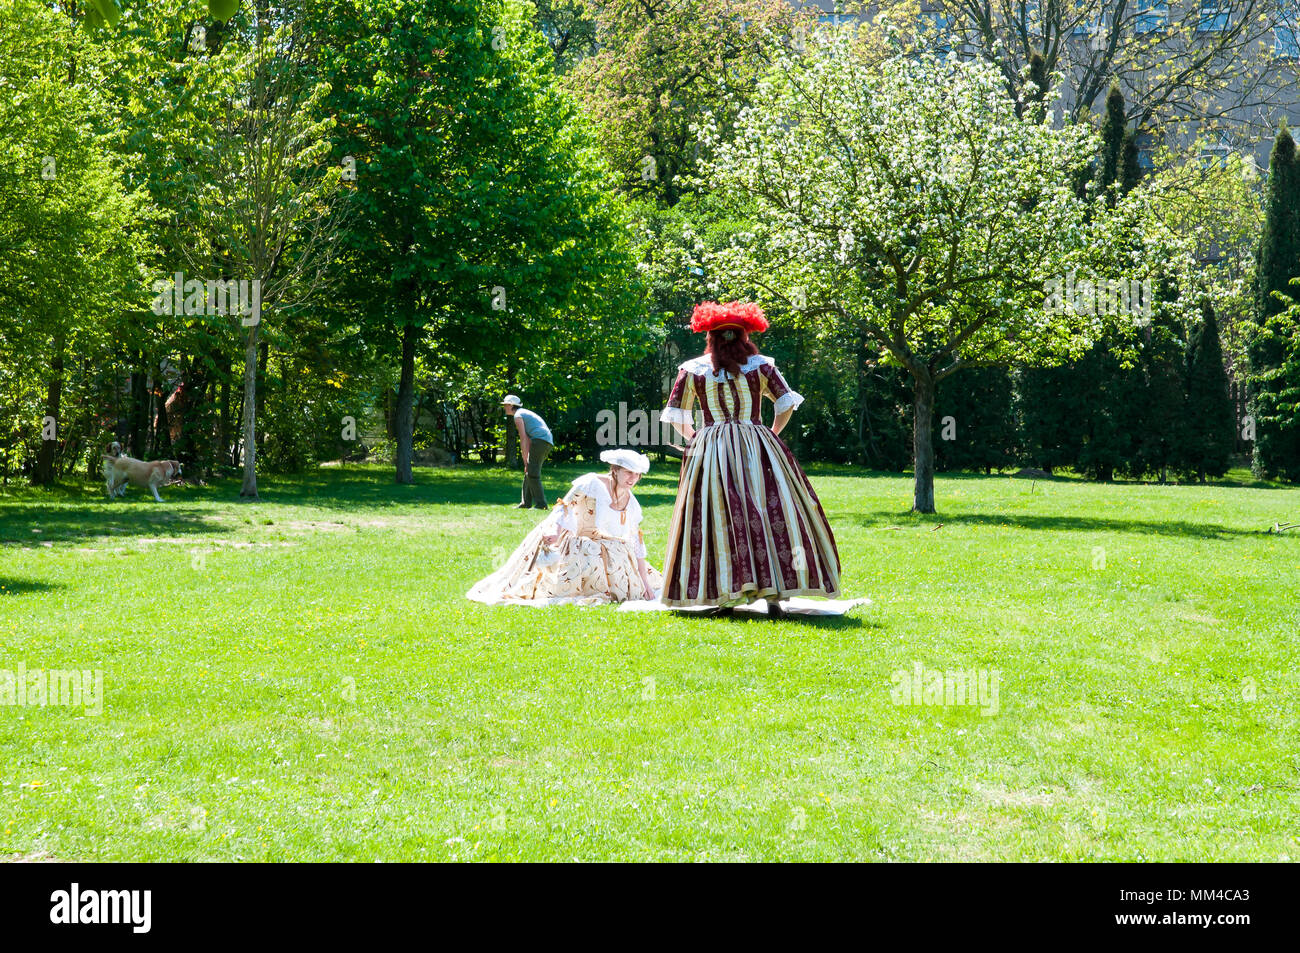 Brandys nL, Czech Republic, 28 April 2018, ladies dressed in baroque dresses at Audiences at the Emperor Charles I relax in the castle garden - Stock Image